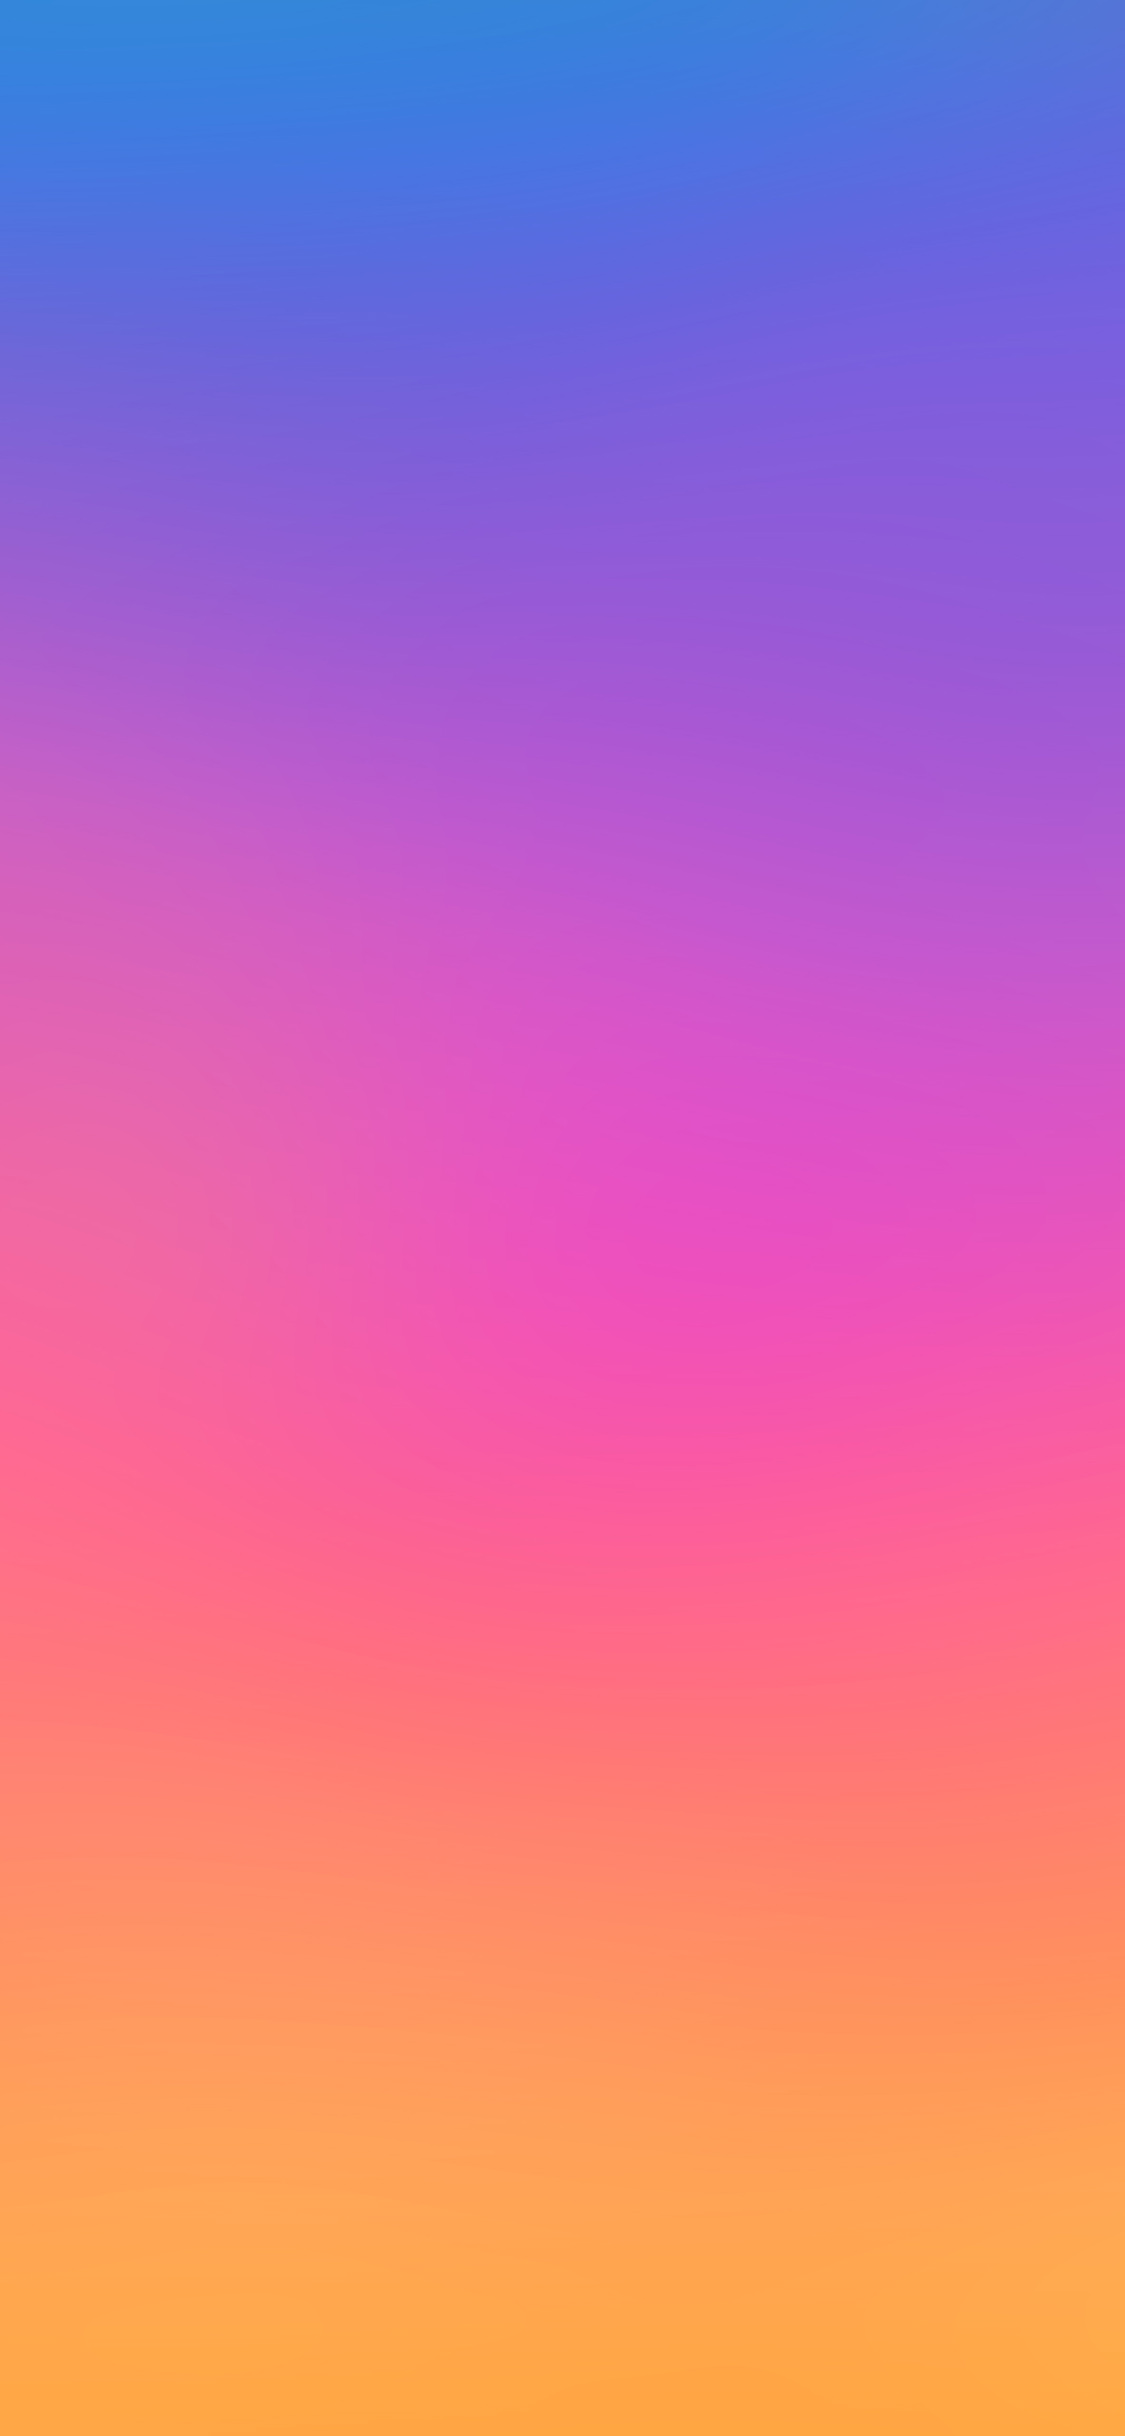 iPhoneXpapers.com-Apple-iPhone-wallpaper-sk25-romantic-sky-purple-red-yellow-blur-gradation